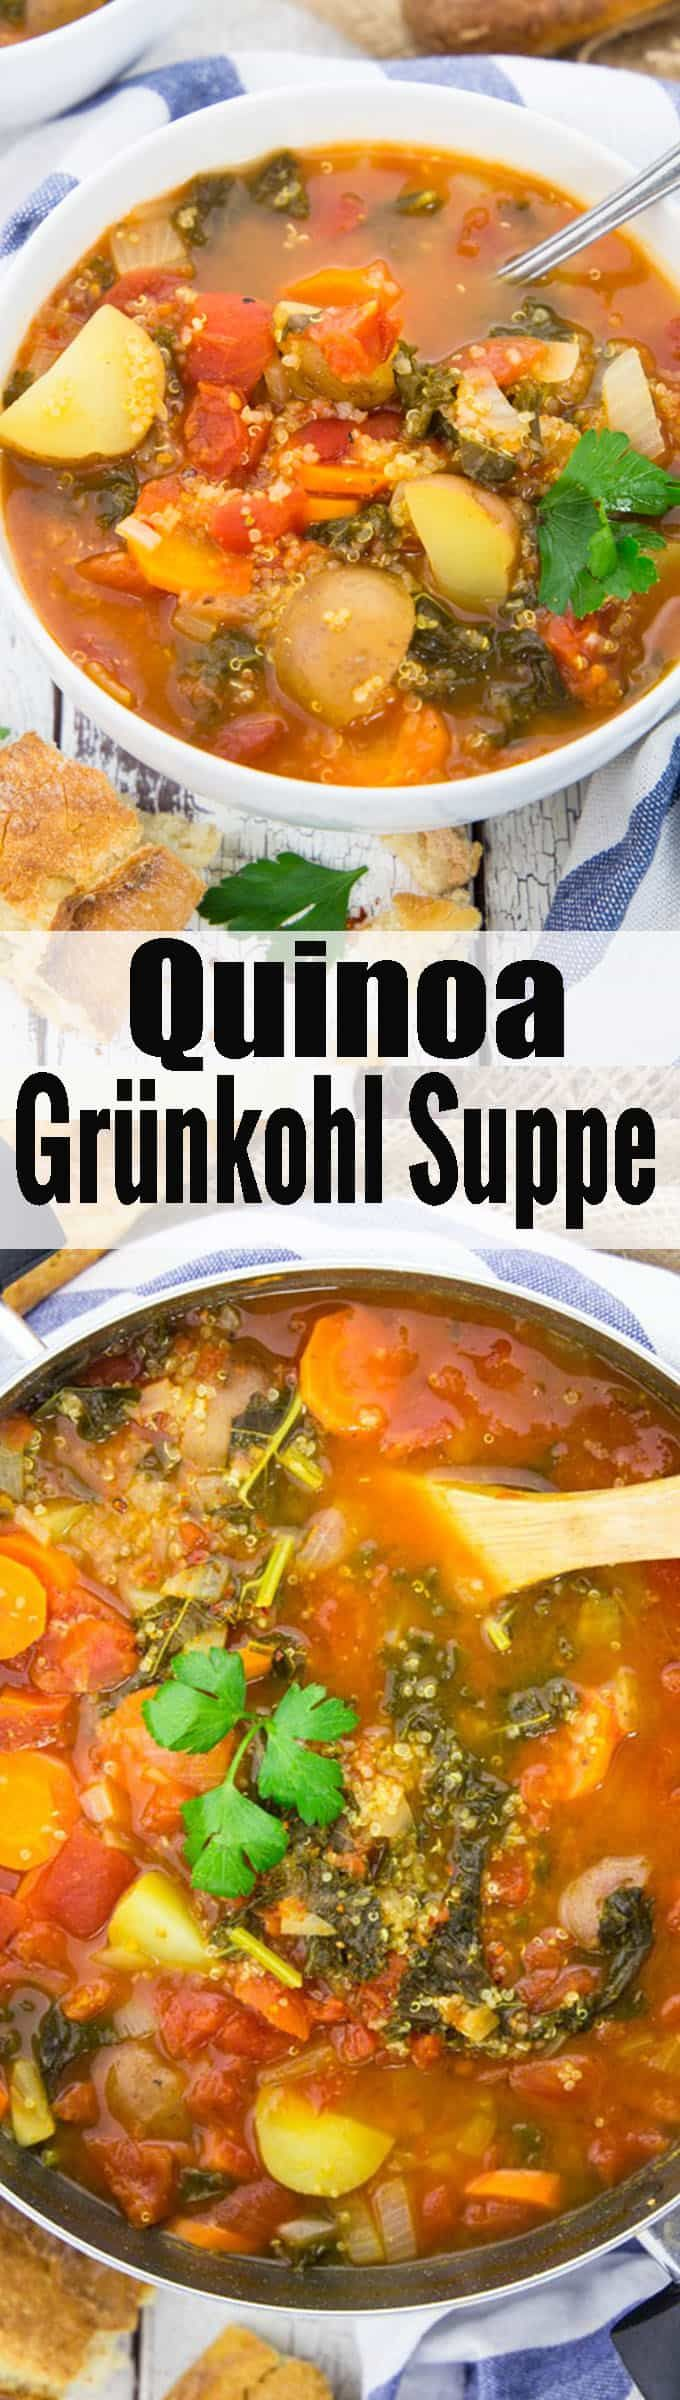 Photo of Vegetable soup with quinoa and kale